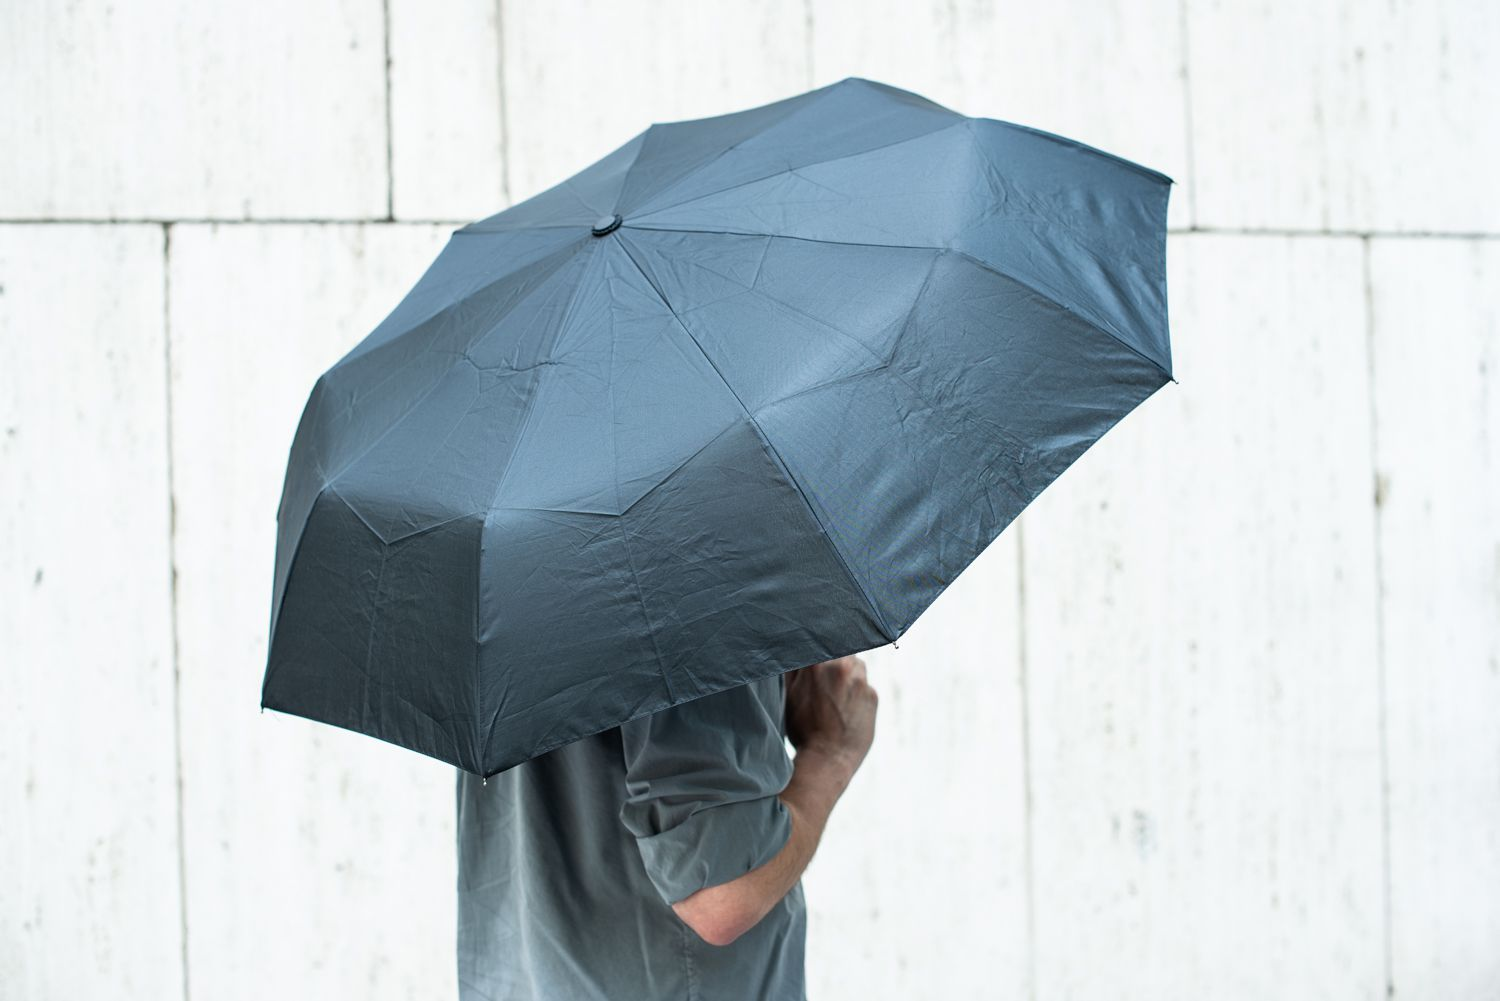 434819e822f7 The 6 Best Travel Umbrellas of 2019